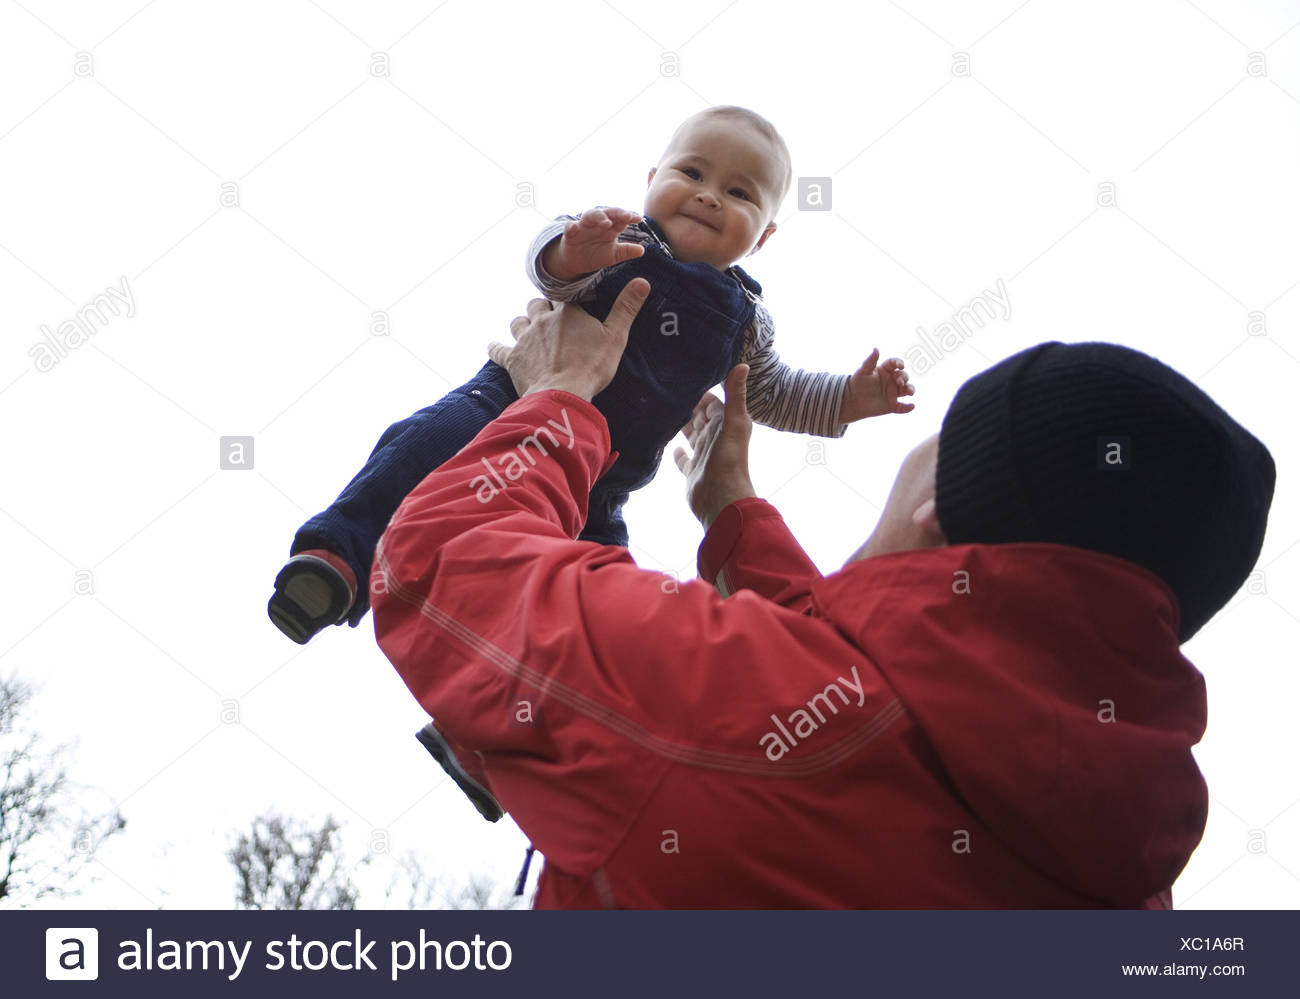 Father baby people throws up man parent paternity jacket red cap headgear love luck feelings emotion fun plays happiness child - Stock Image